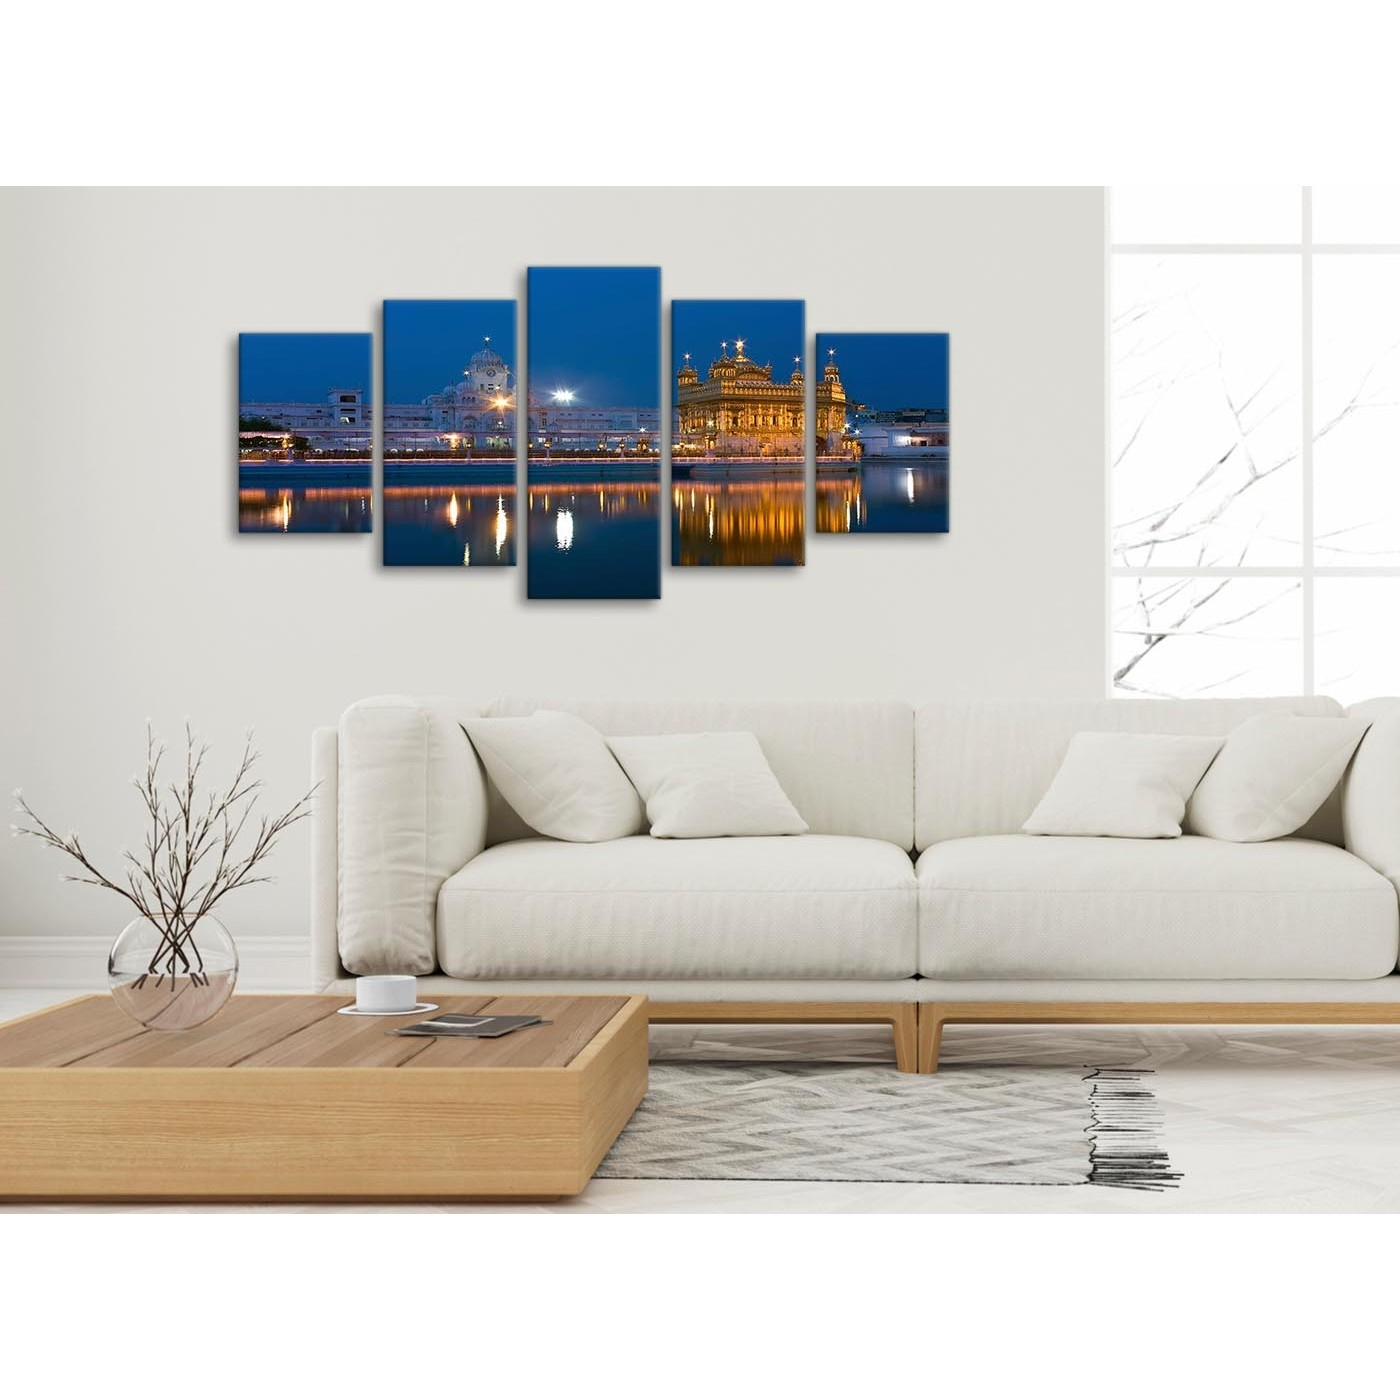 5 Panel Canvas Wall Art Pictures – Sikh Golden Temple Amritsar Intended For Most Current 5 Piece Wall Art (View 3 of 20)